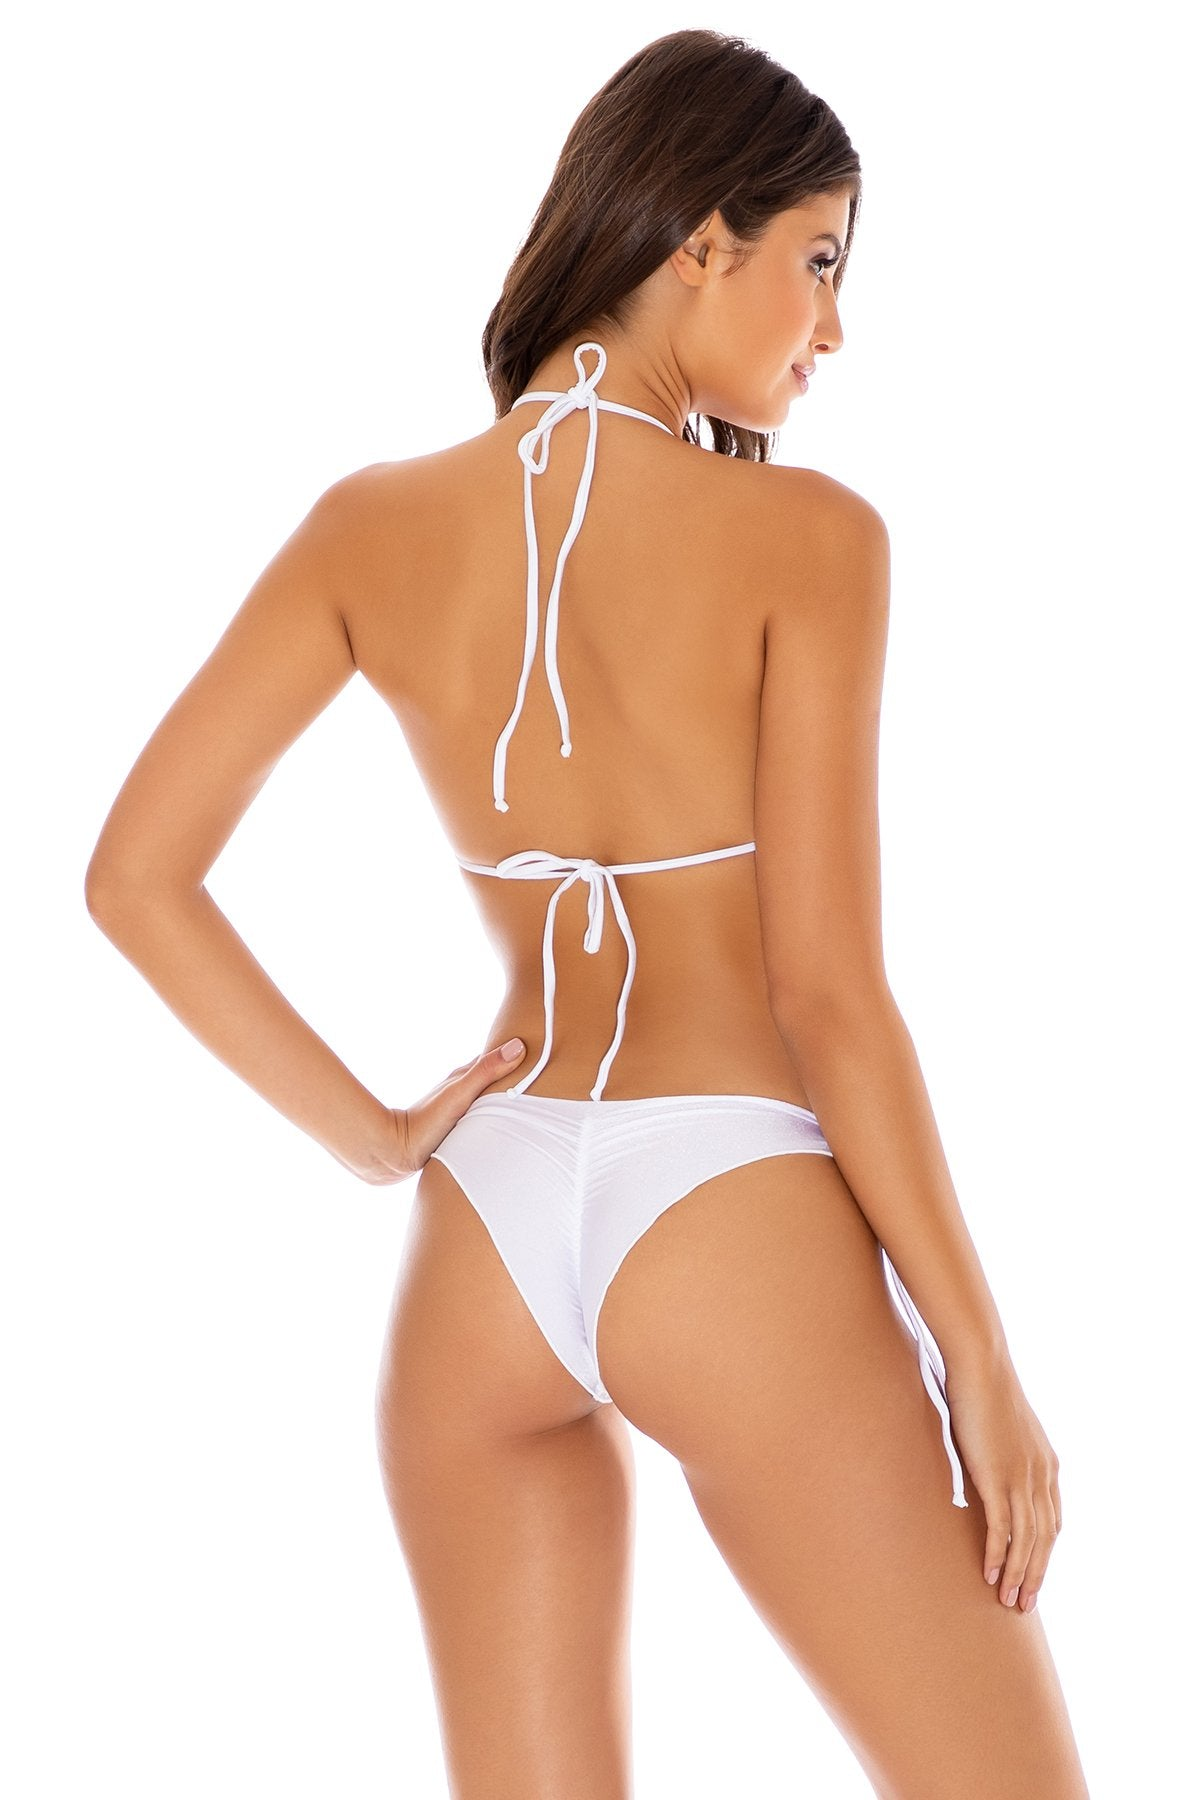 COSITA BUENA - Wavey Triangle Top & Wavey Ruched Back Tie Side Bottom • White